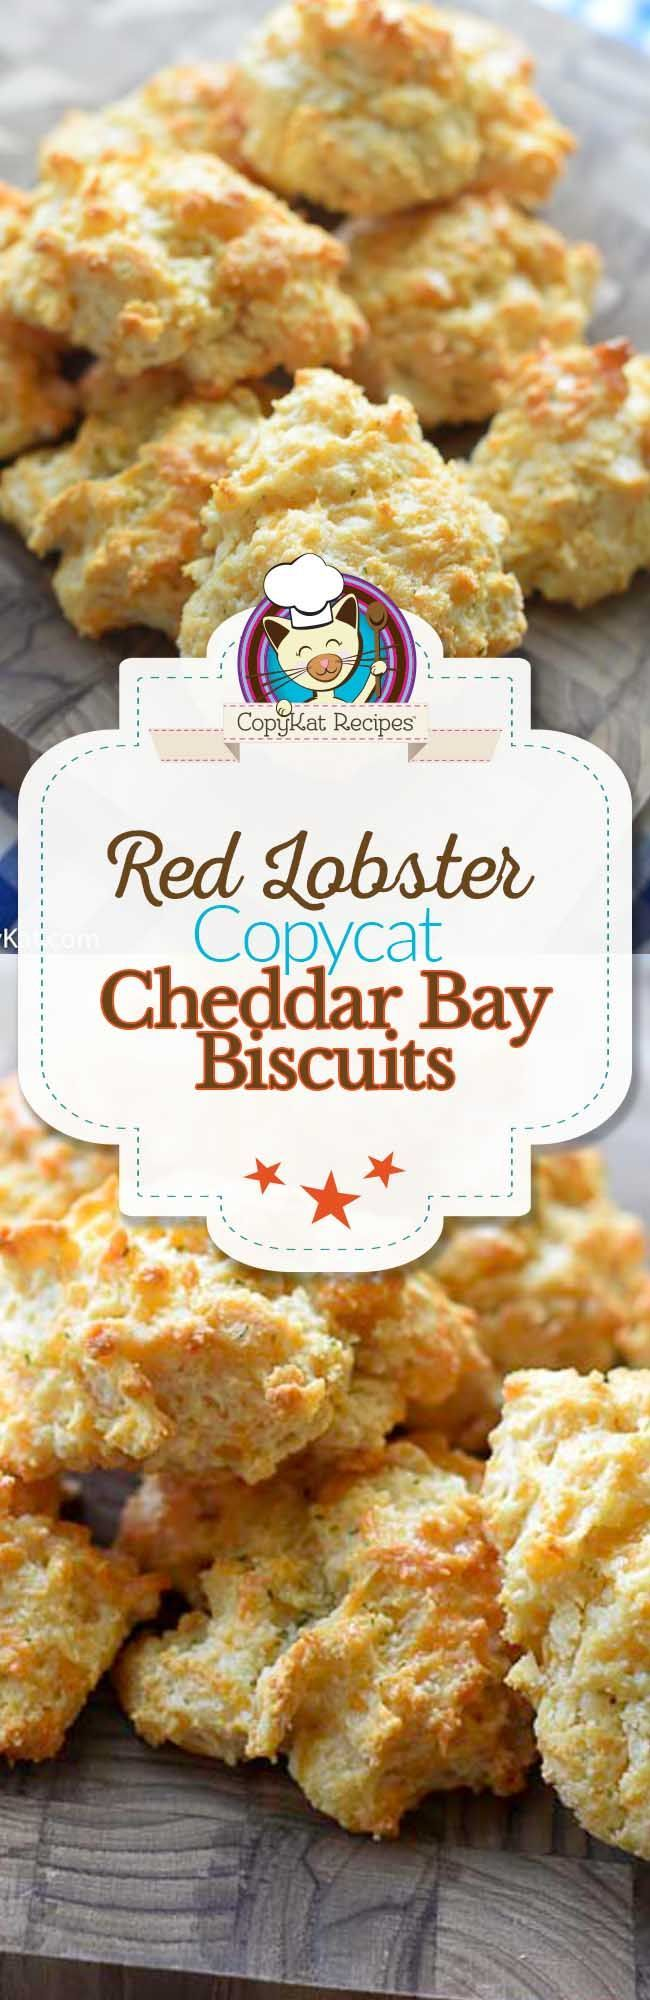 Make Red Lobster Copycat Cheddar Bay Biscuits at home with this recipe.